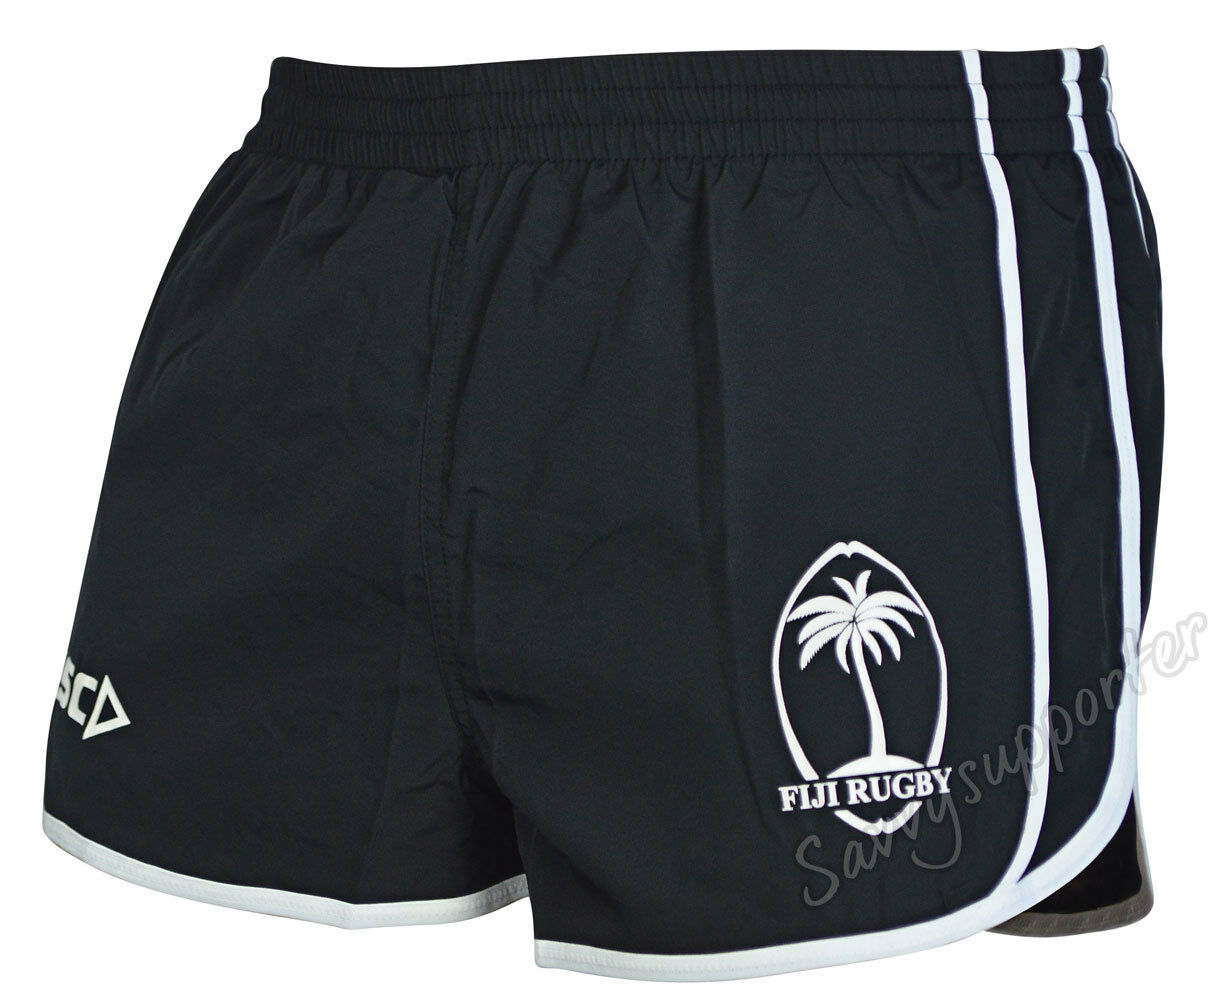 Fiji Rugby Rugby Union Athletic Running Shorts Sizes S-5XL BNWT